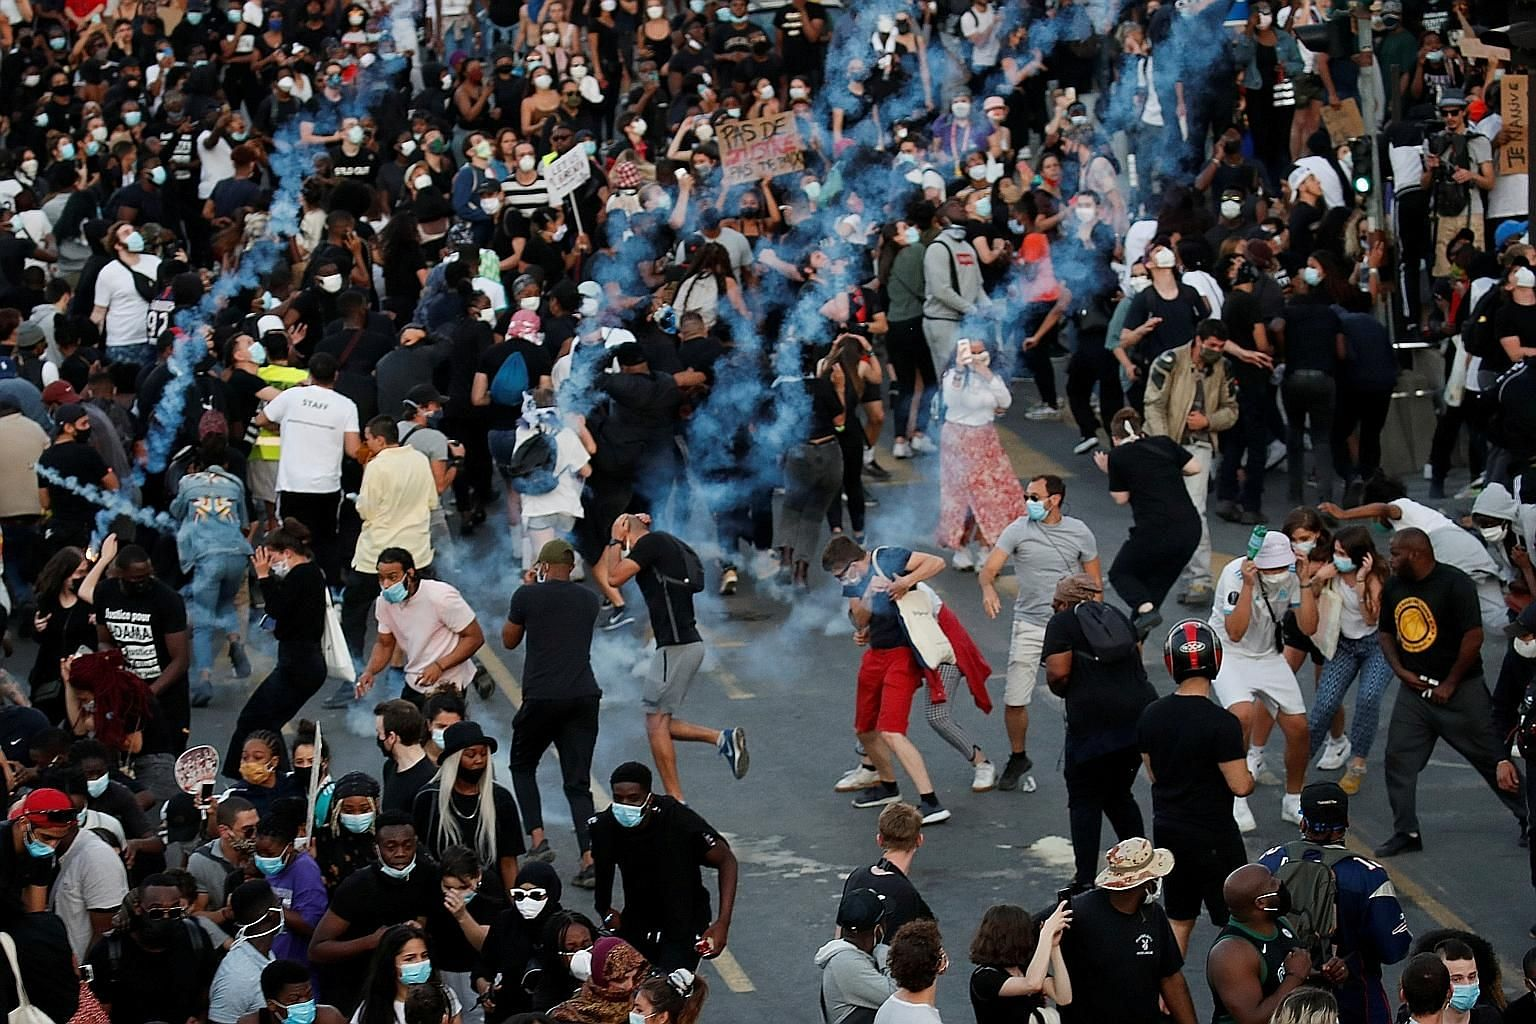 Clashes broke out between police and protesters in Paris on Tuesday after some 20,000 people rallied over the 2016 death of Mr Adama Traore, a black man, in police custody. Many were riled up by protests in the United States against police brutality